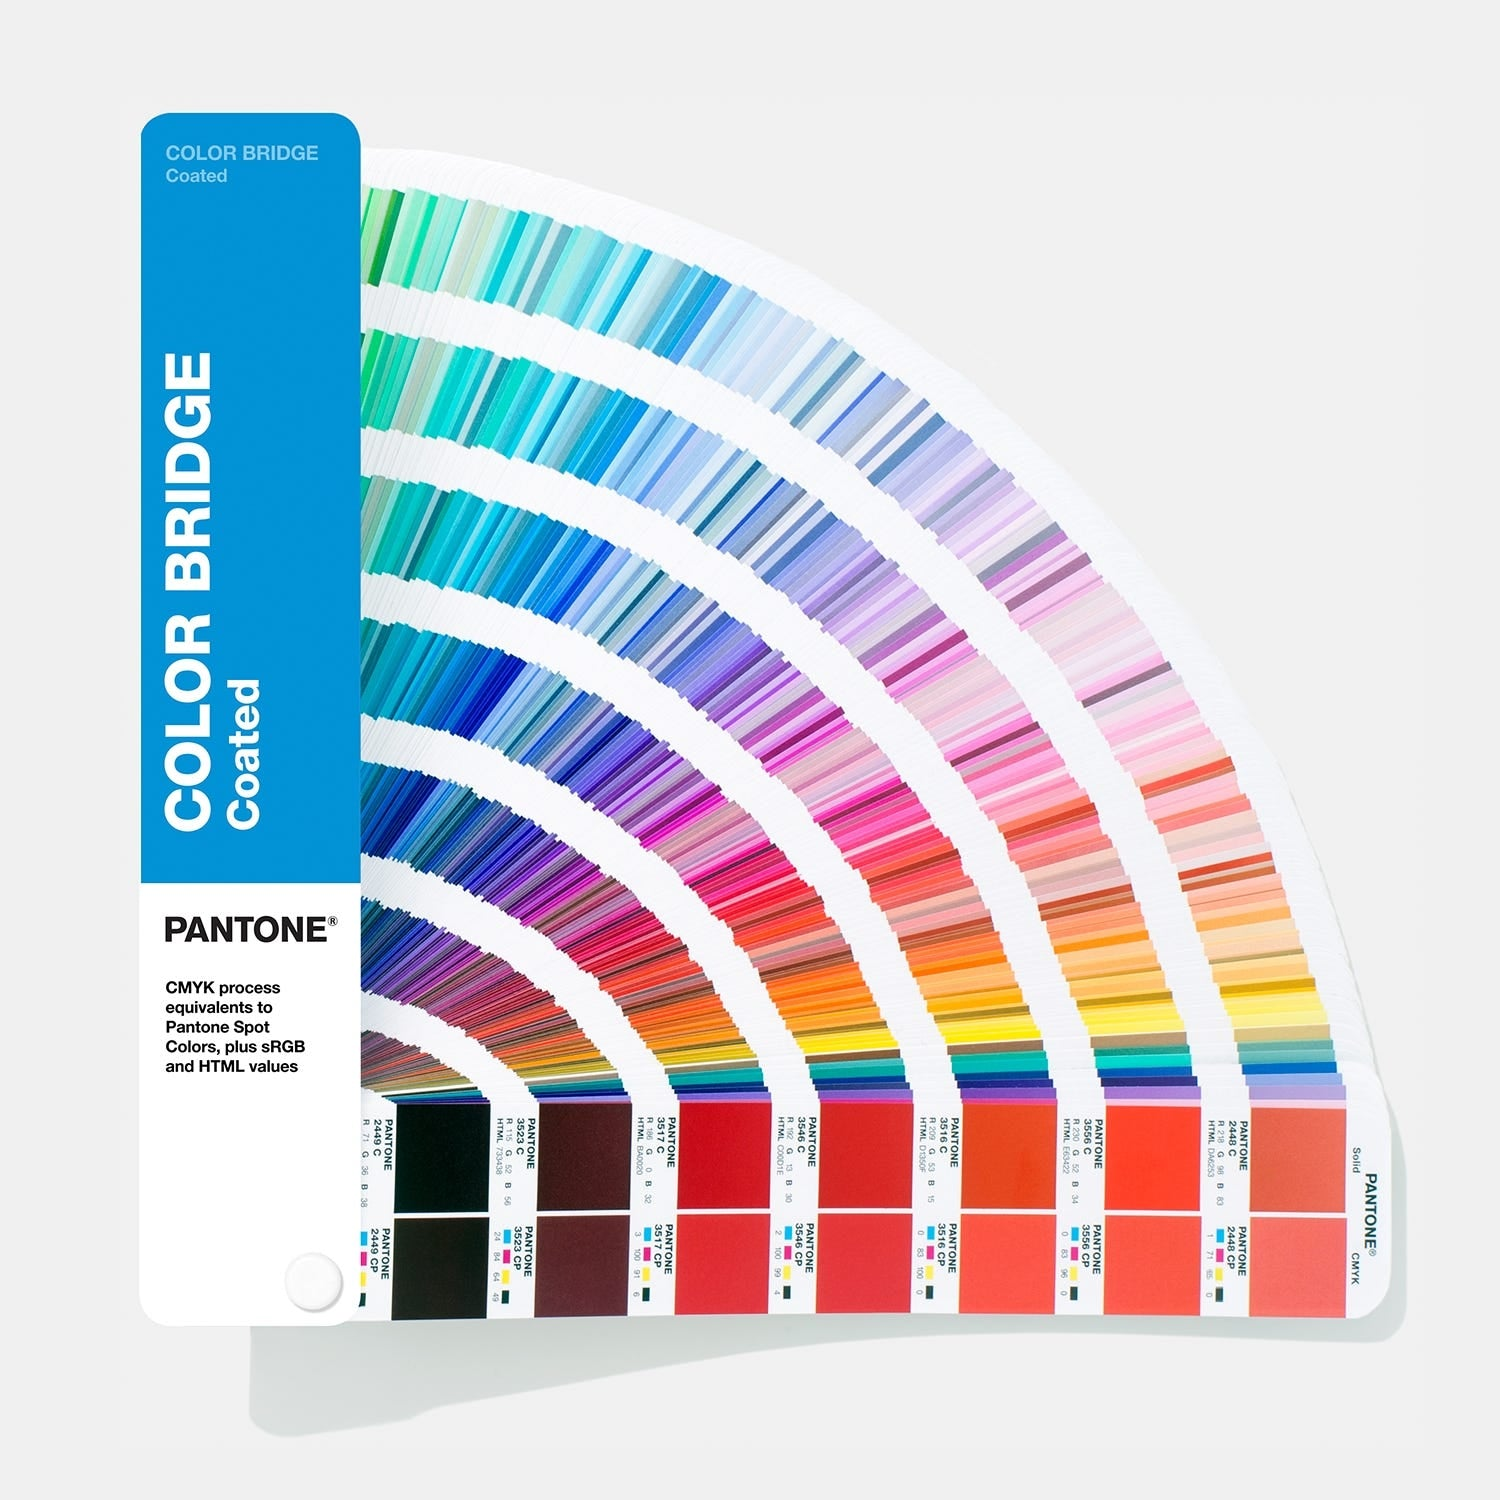 Pantone Coated Color Bridge